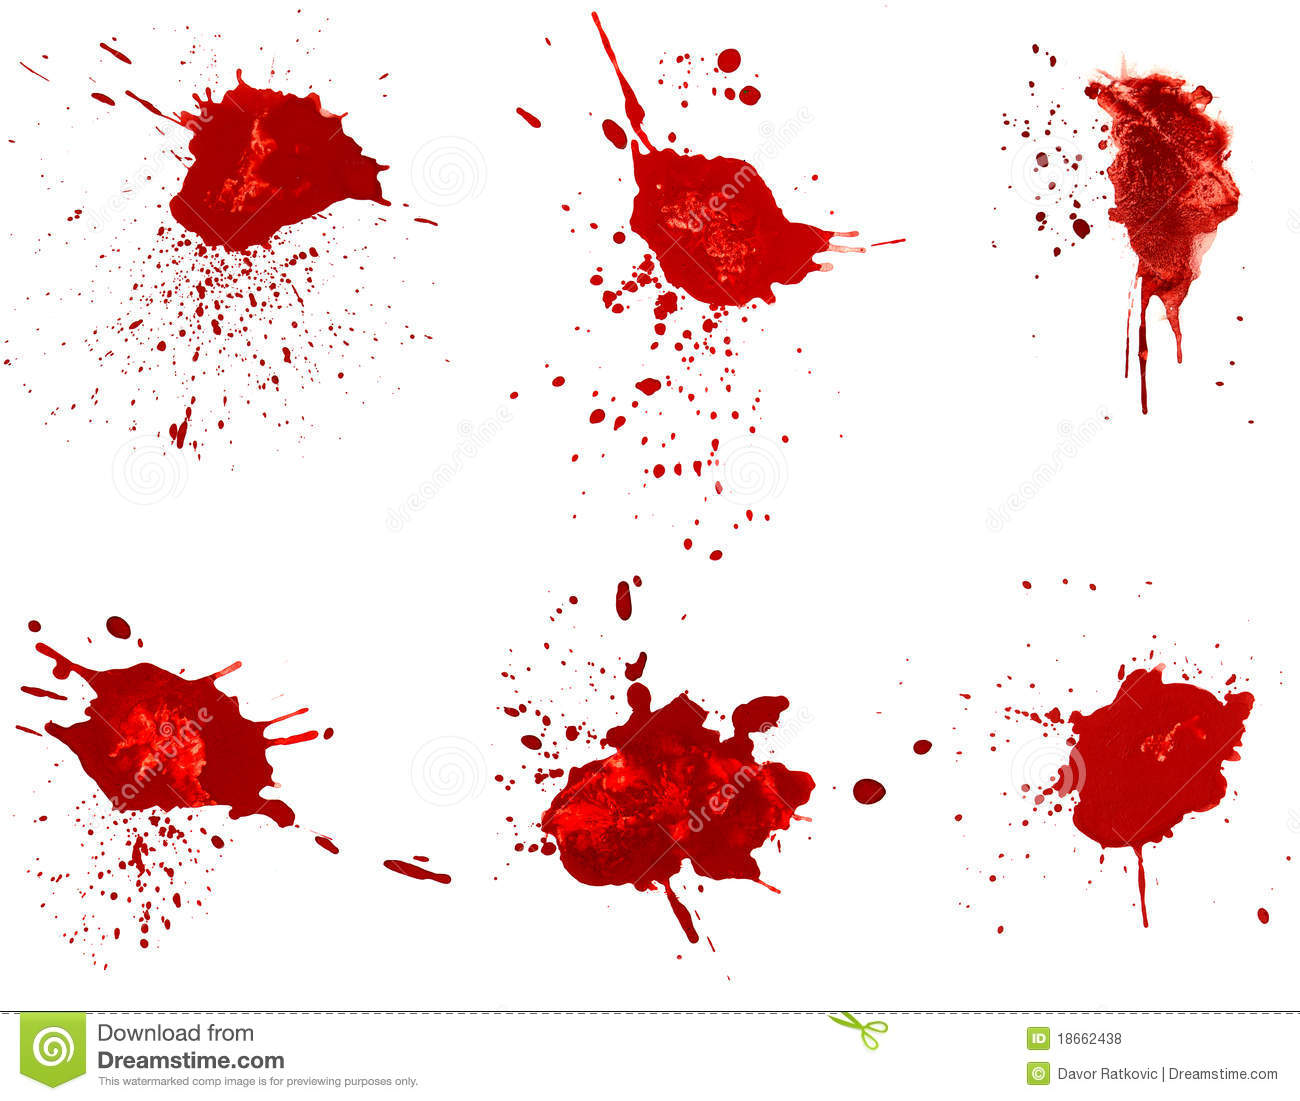 Blood stains royalty free stock photos image 18662438